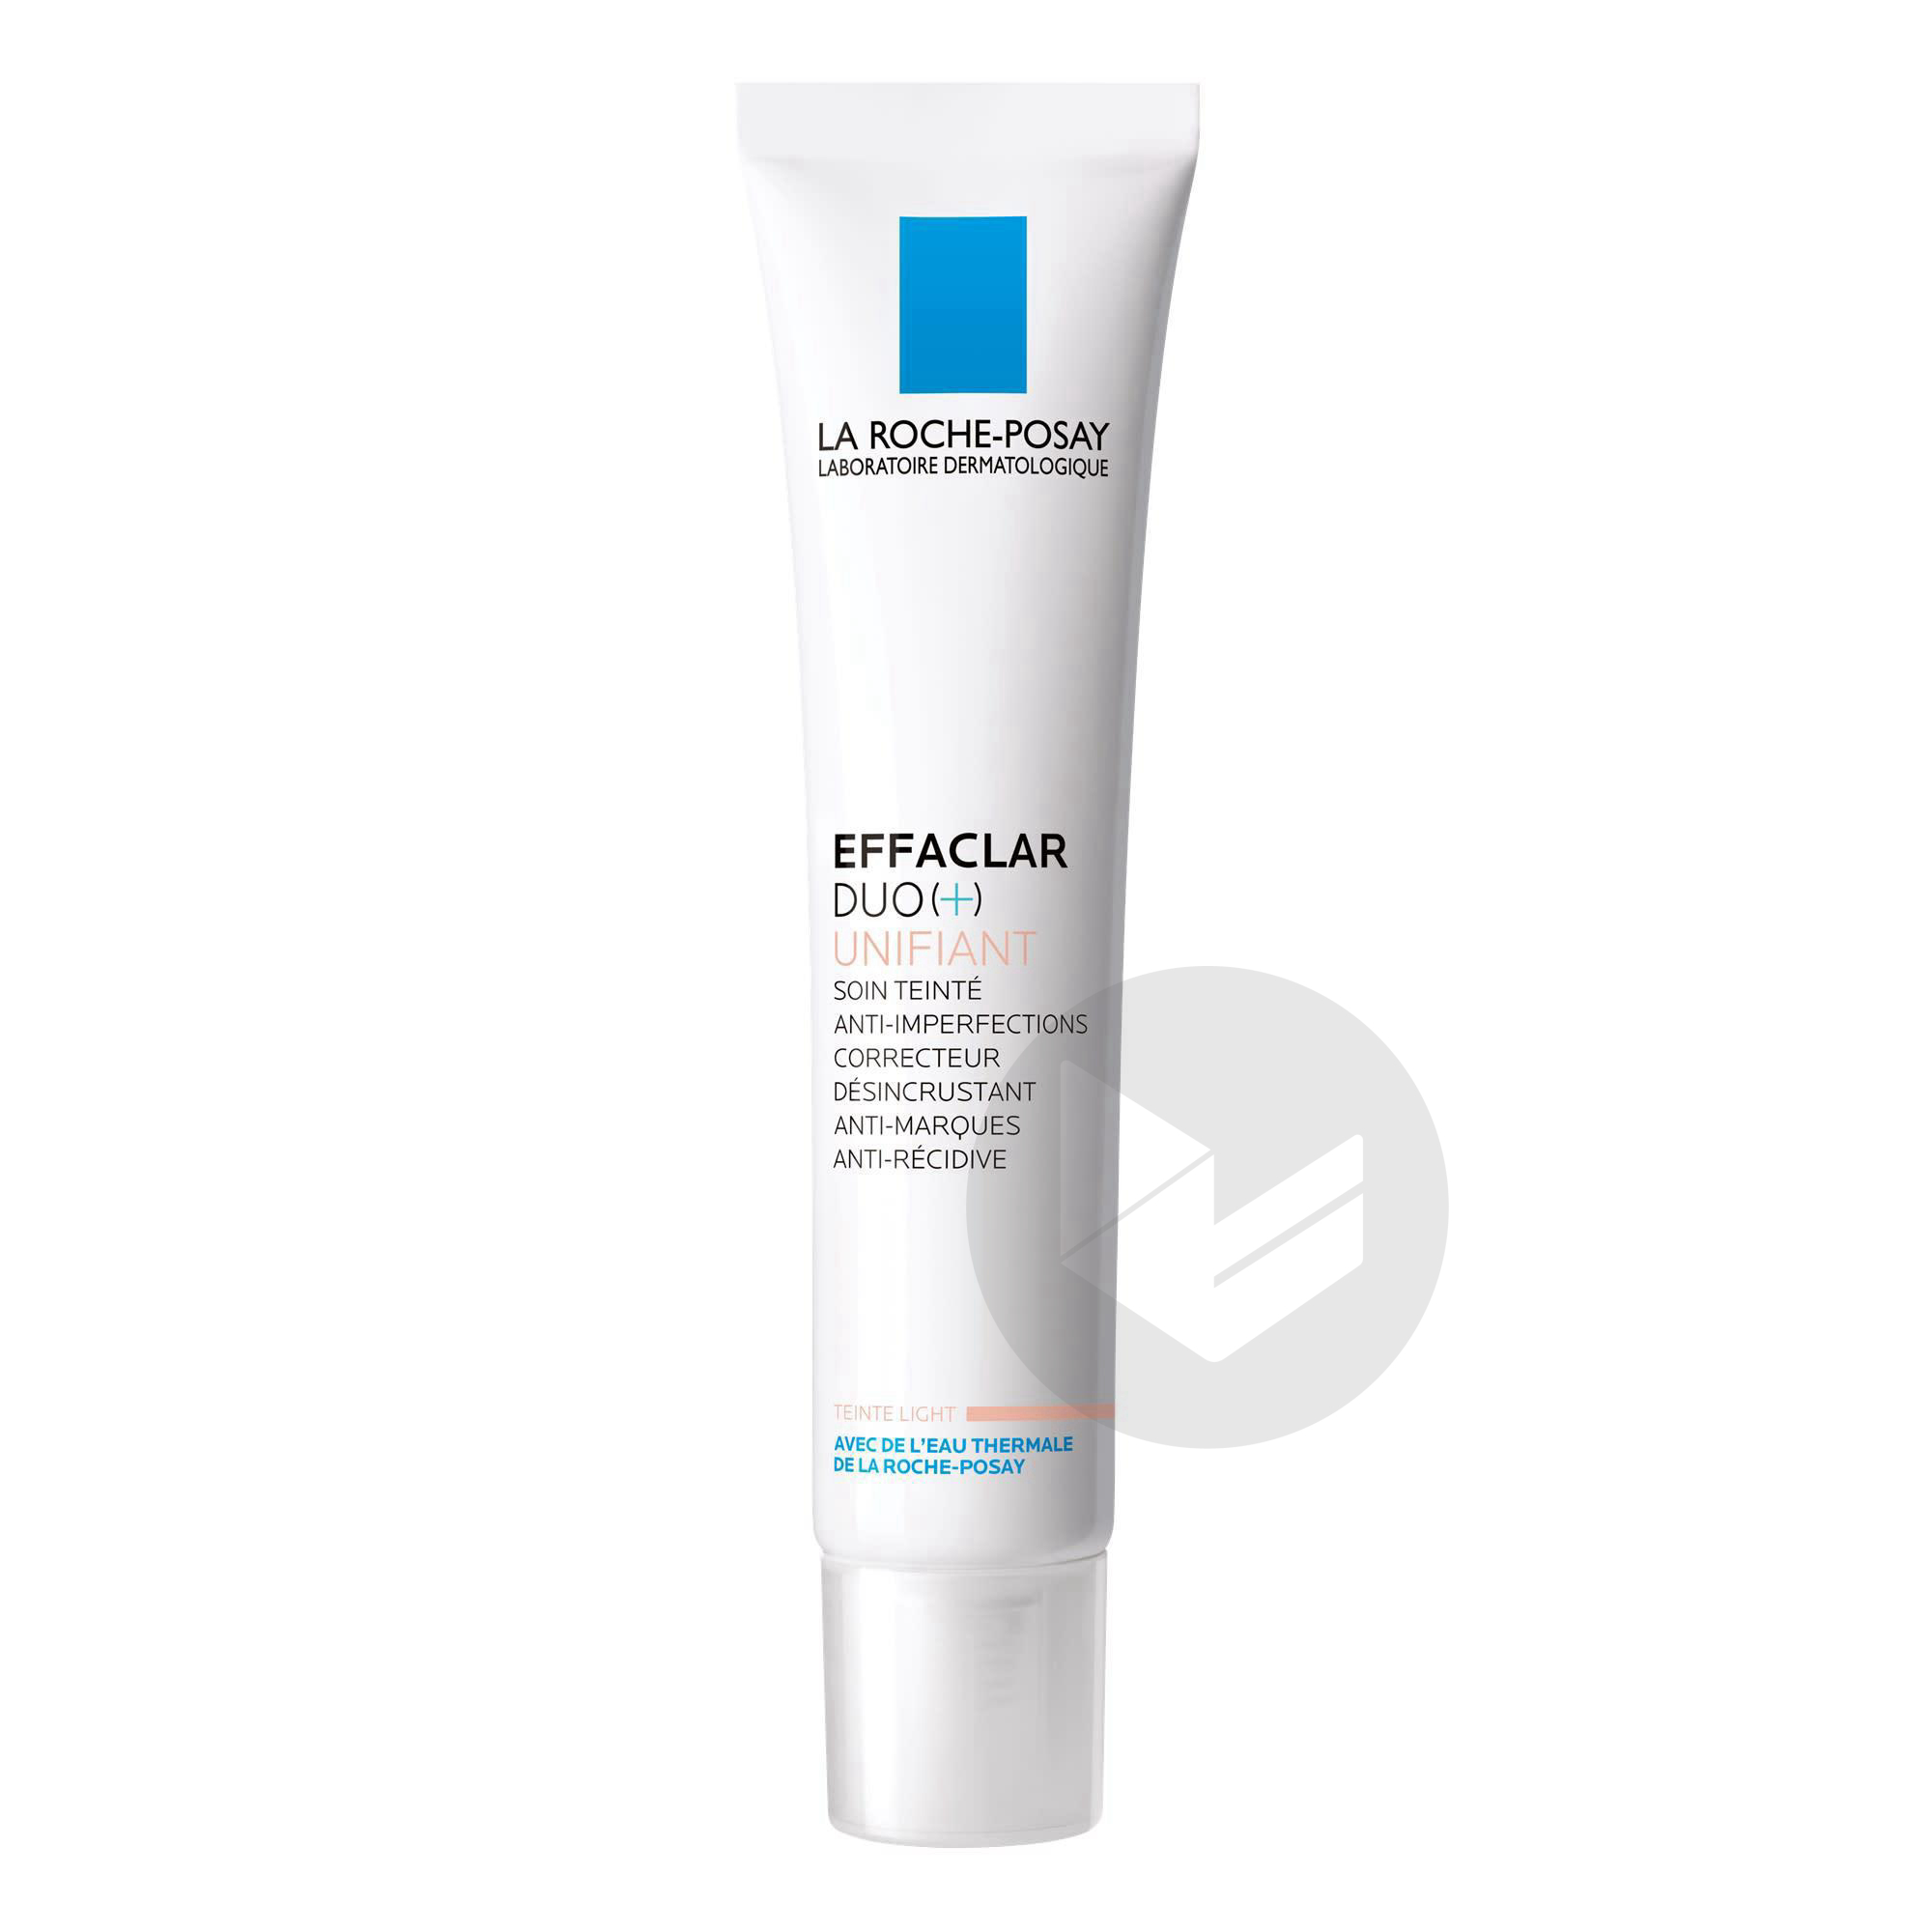 Effaclar Duo Soin Teinte Anti Imperfections Anti Marques Et Anti Recidive Teinte Light 40 Ml Teinte Light